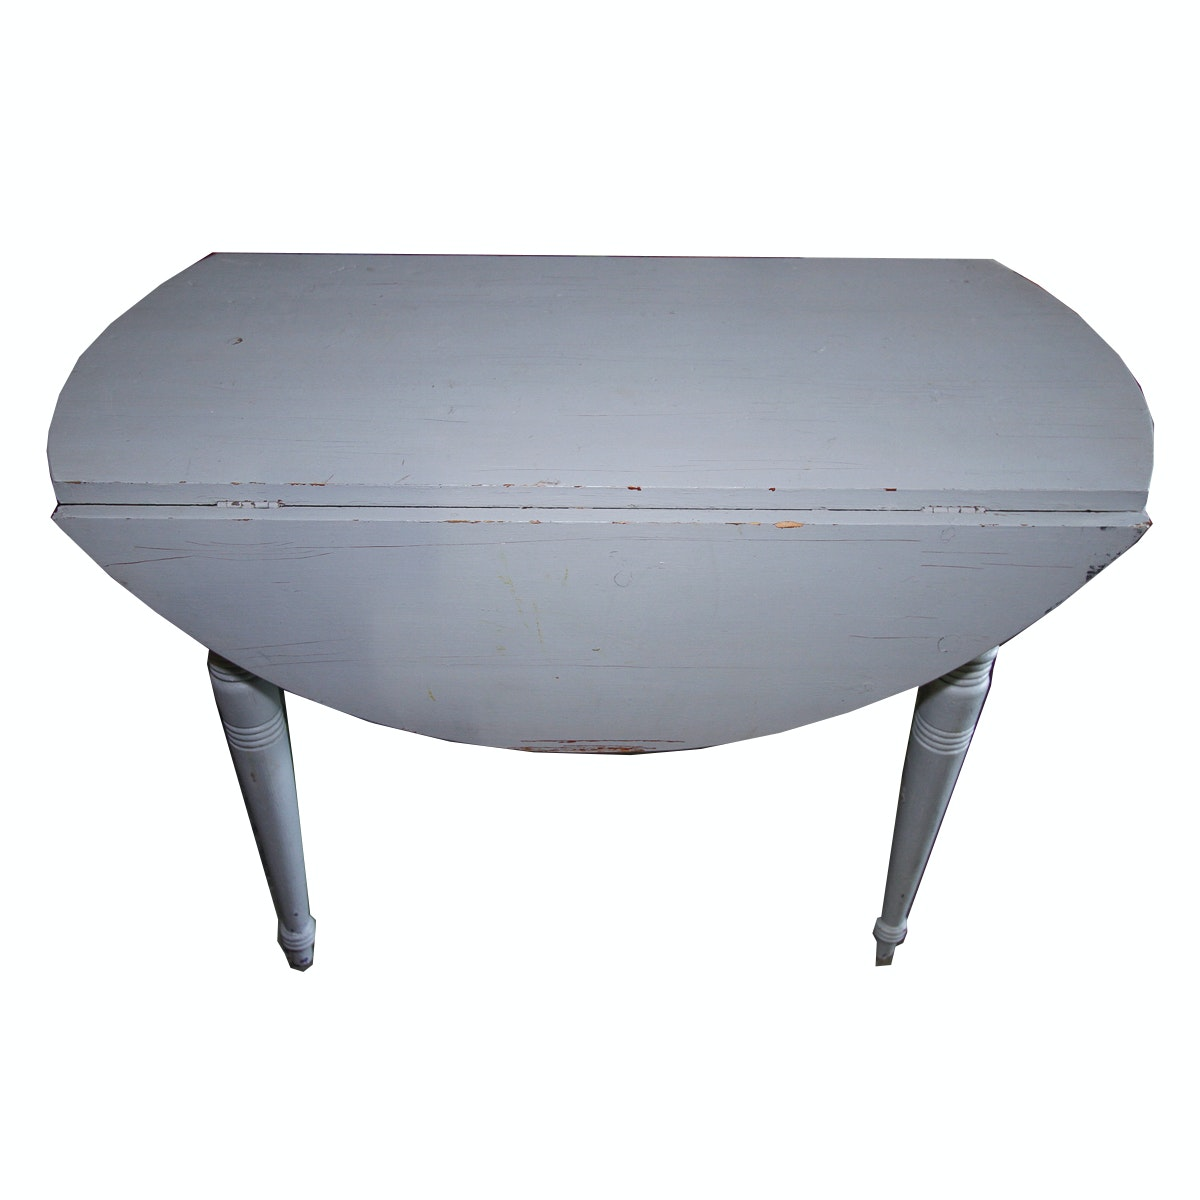 Gray-Painted Drop-Leaf Dining Table